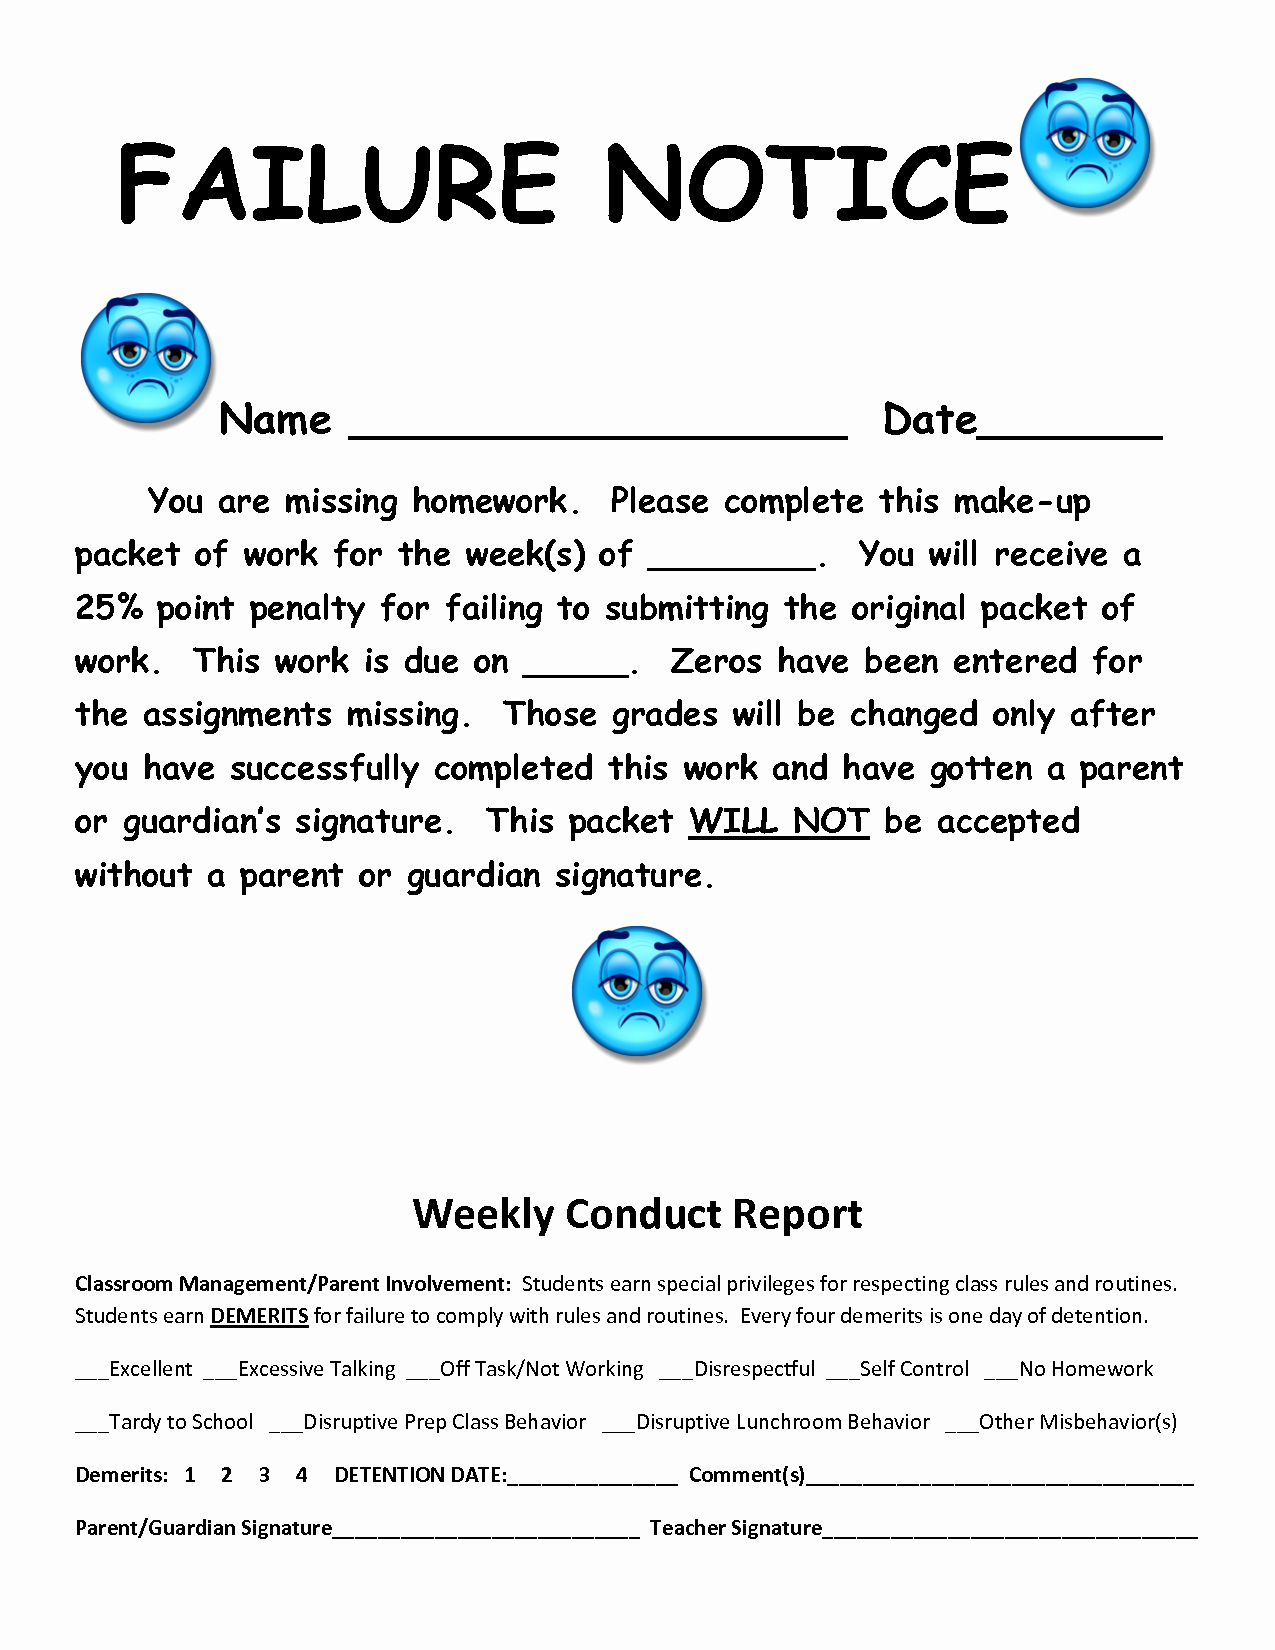 Letter to Parents Template Best Of Failure Letter to Parents Template Templates Station